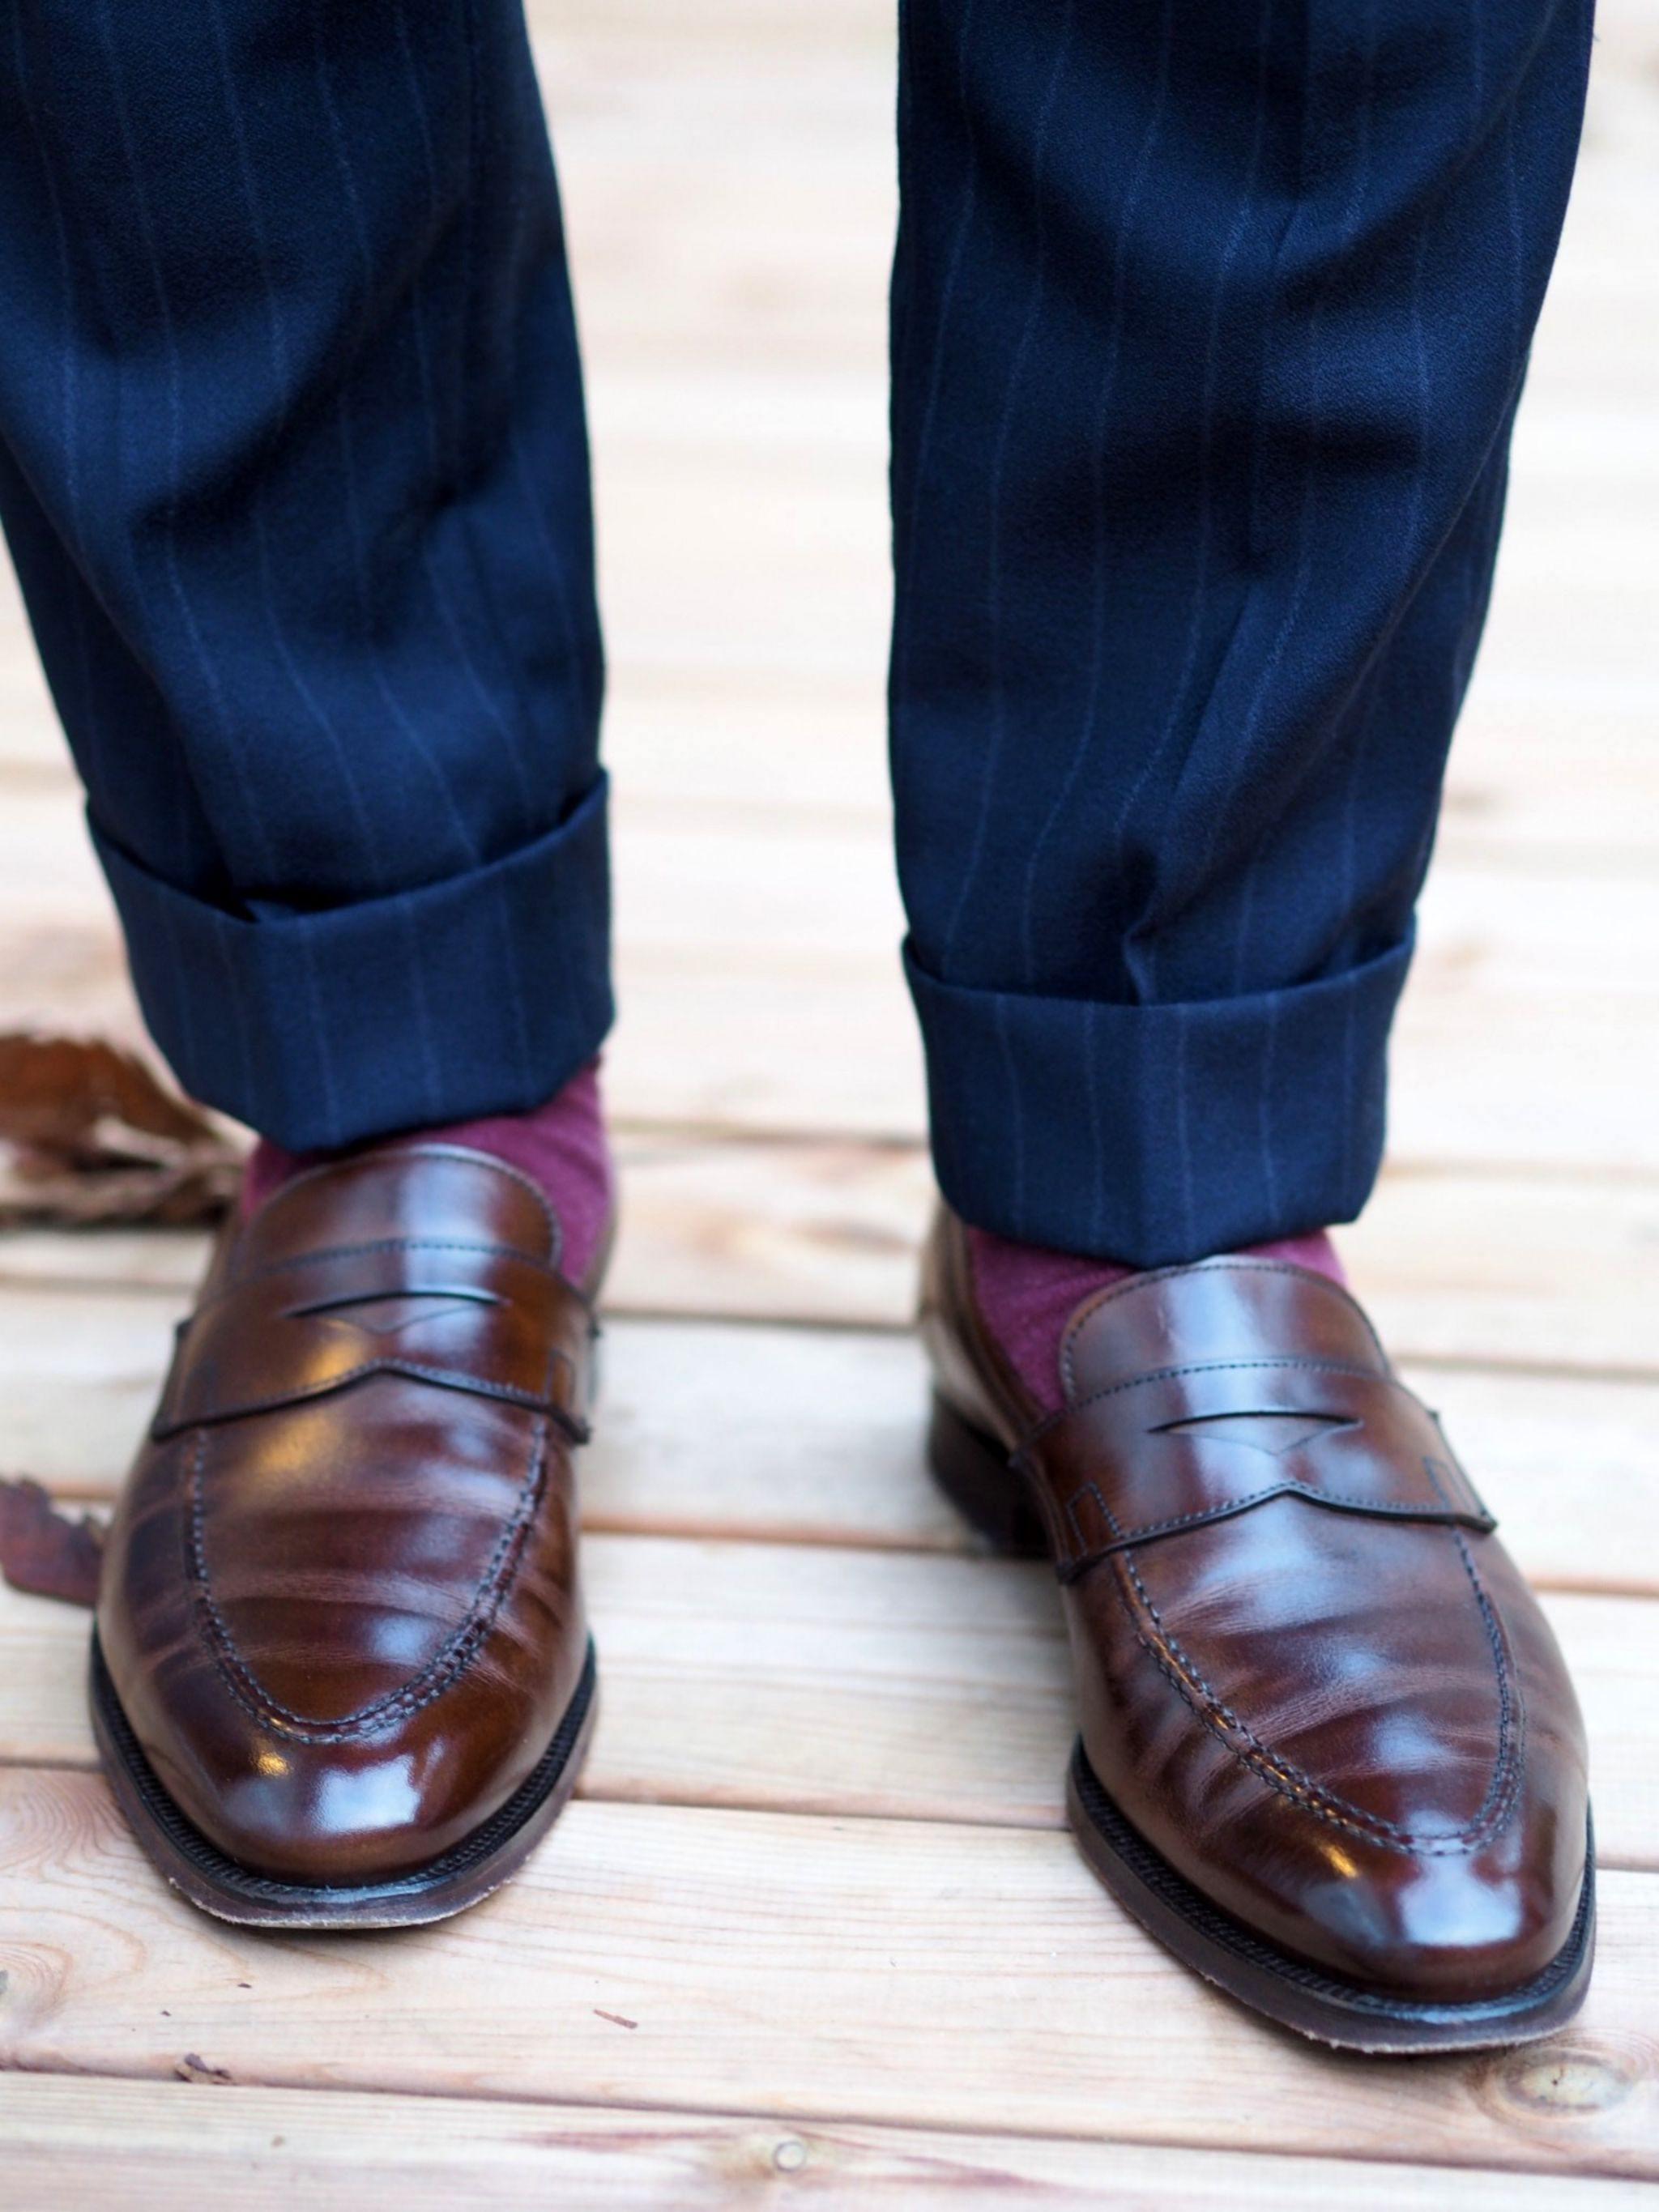 Autumnal business outfits - Crockett&Jones loafers with blue chalk striped suit